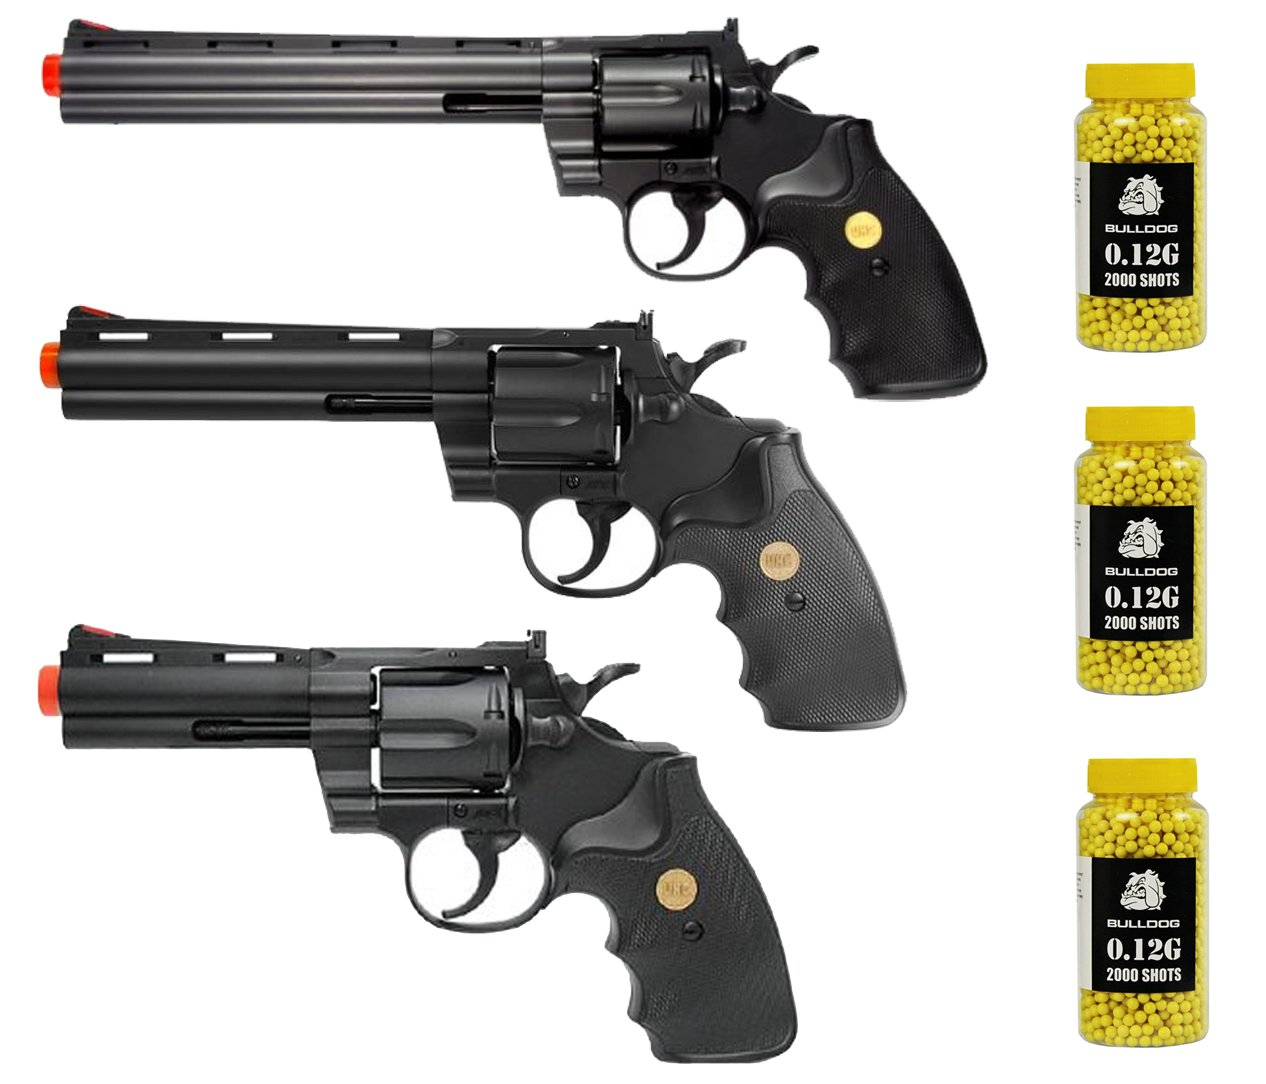 A&N Airsoft Revolver Gift Bundle - 3 X Spring Action Airsoft Revolvers With 6000 Bulldog BBs